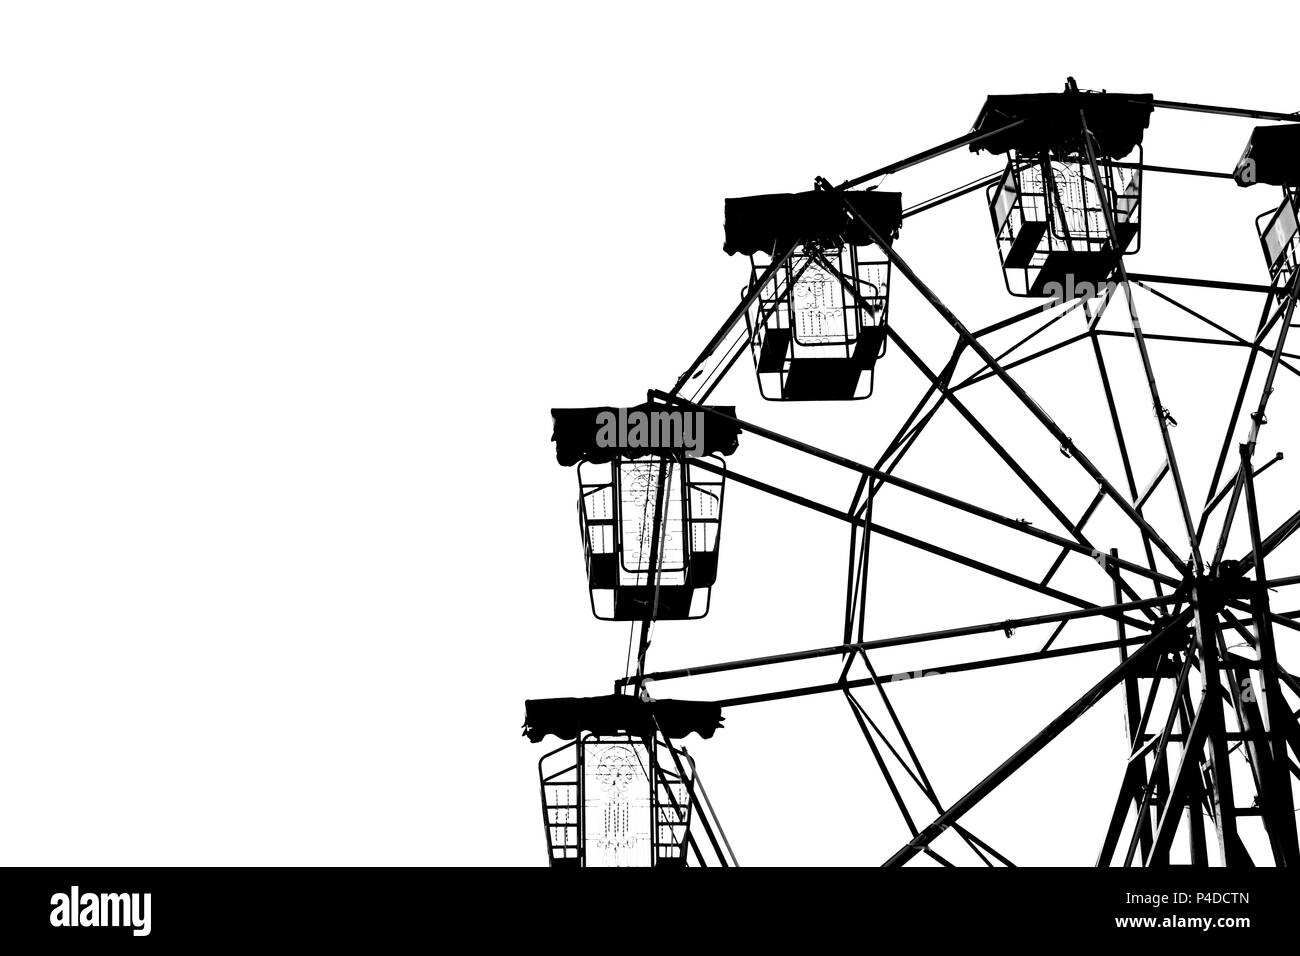 Ferris Wheel Seats Close Up High Resolution Stock Photography And Images Alamy